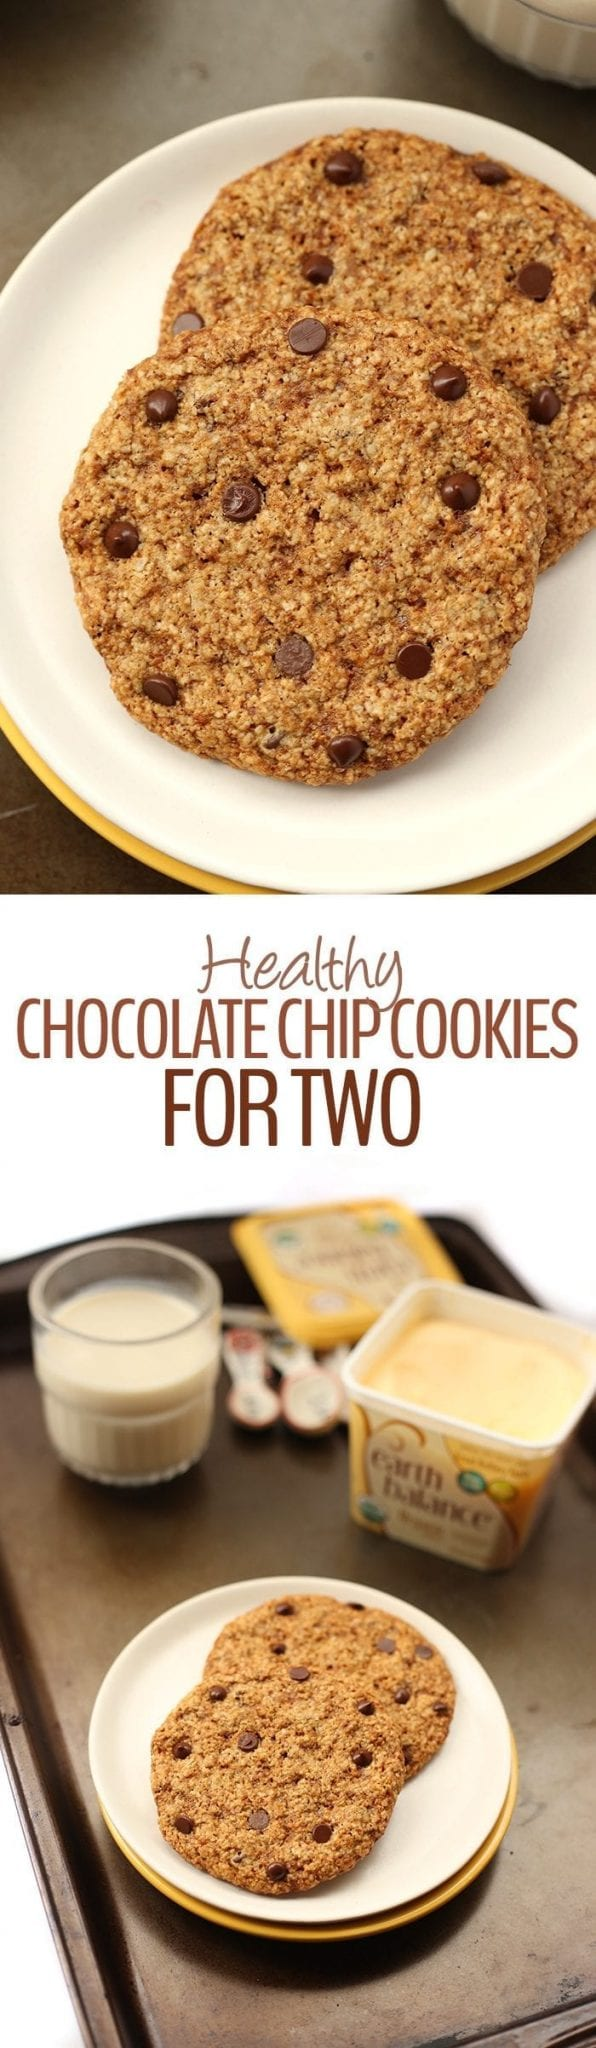 Ever find yourself tempted by that huge batch of cookies? No need to worry with these Healthy Chocolate Chip Cookies for Two! Each batch makes two cookies made from wholesome ingredients that are vegan and gluten-free.